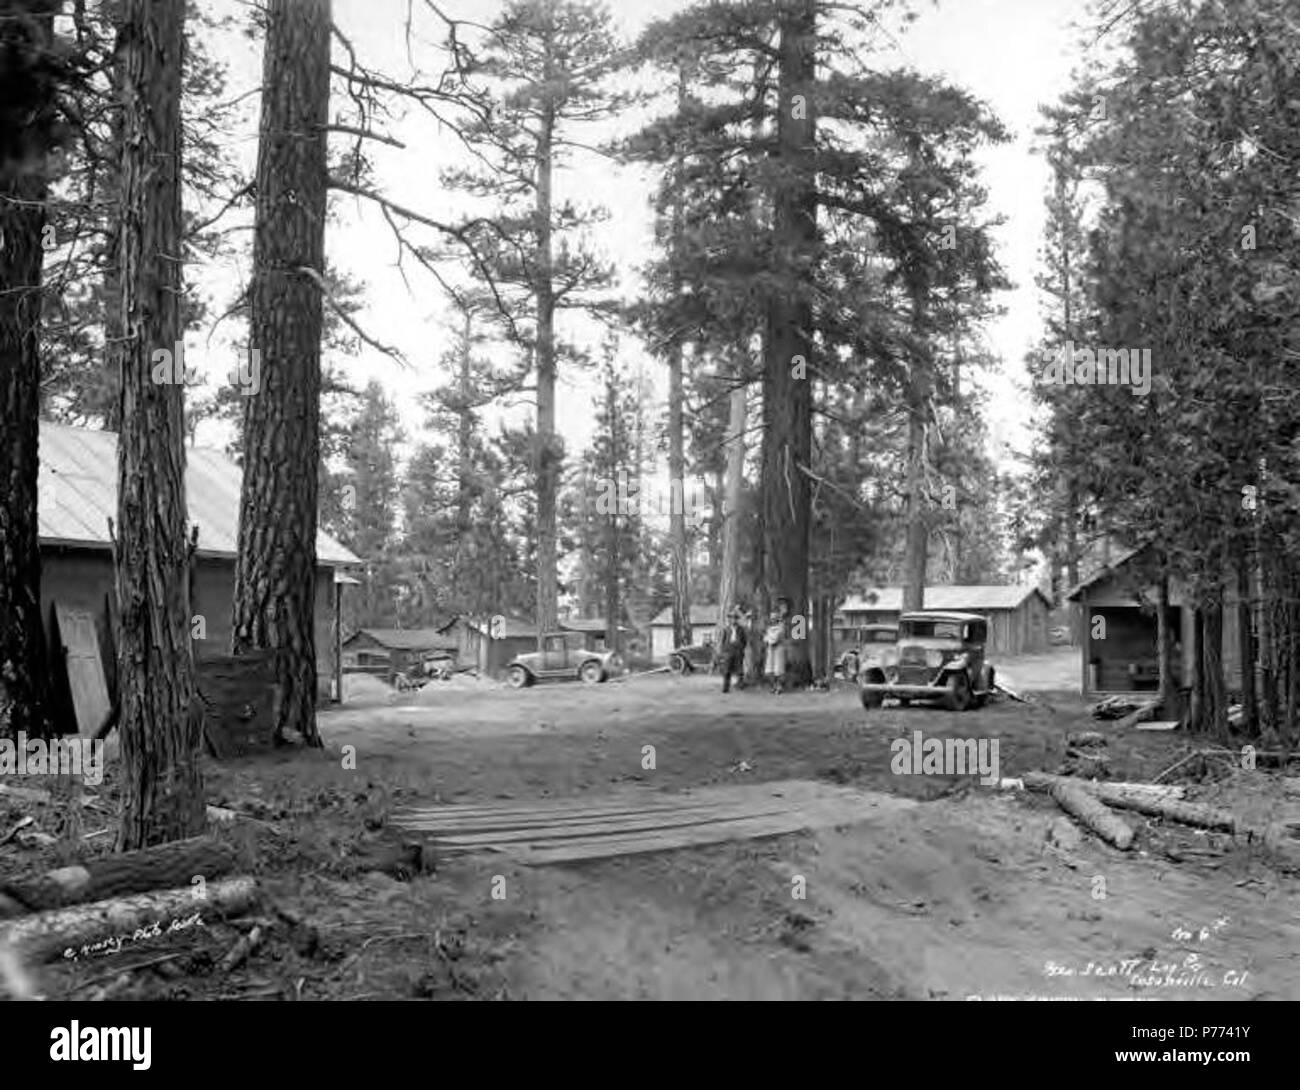 Susanville california black and white stock photos images alamy english logging camp and cars george scott lumber company susanville ca publicscrutiny Choice Image